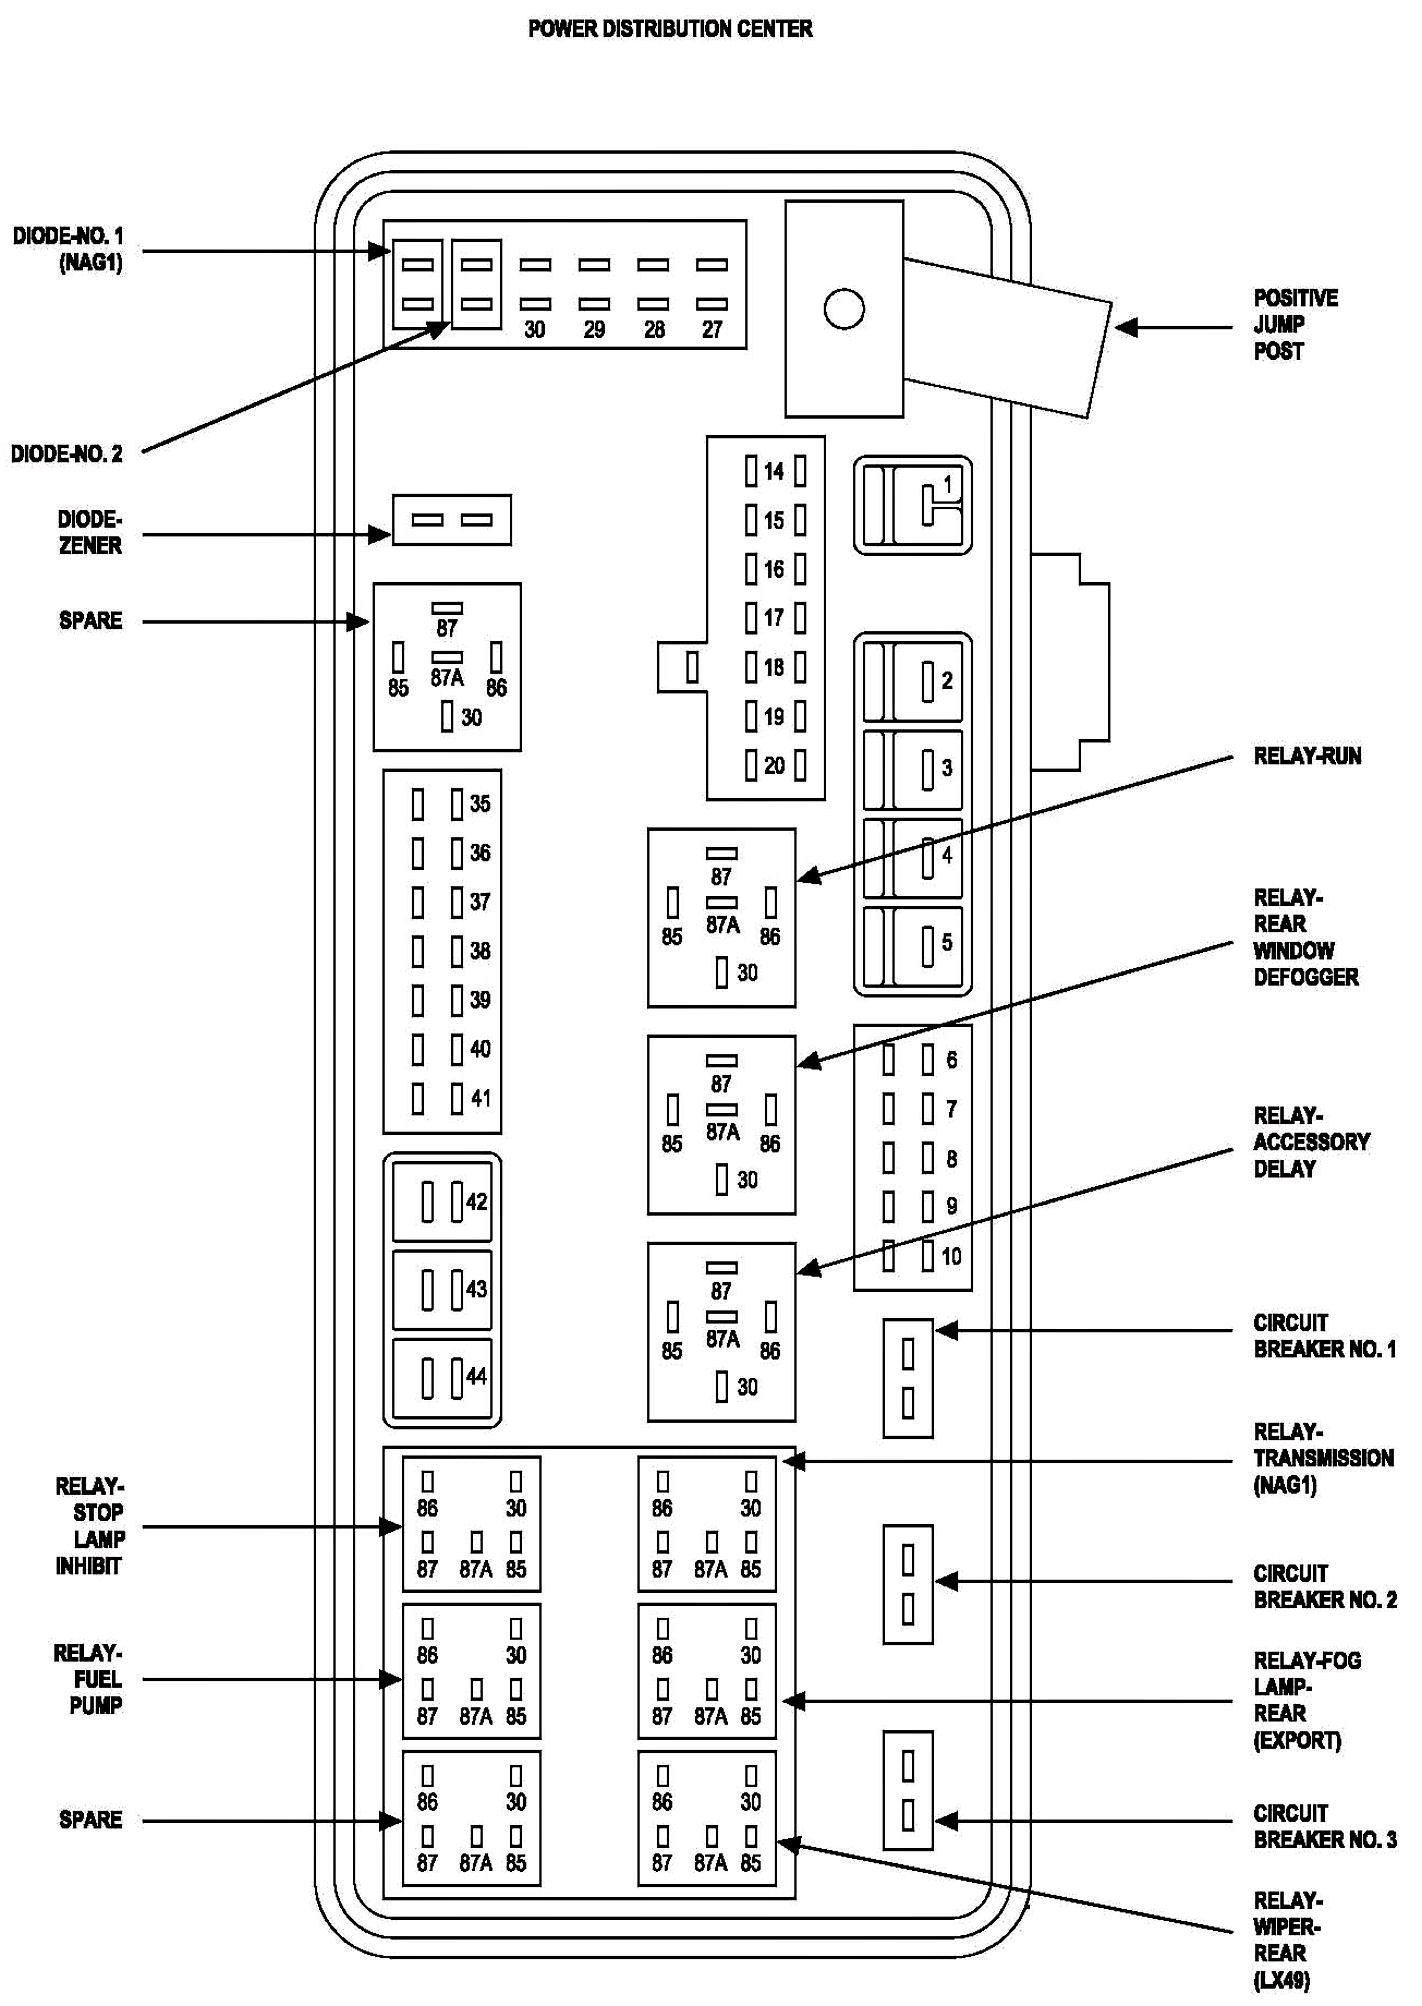 wiring diagram chrysler 300 srt8 circuit diagram templatewrg 1374] wiring diagram chrysler 300 srt8back fuse box on 2007 chrysler 300 data wiring